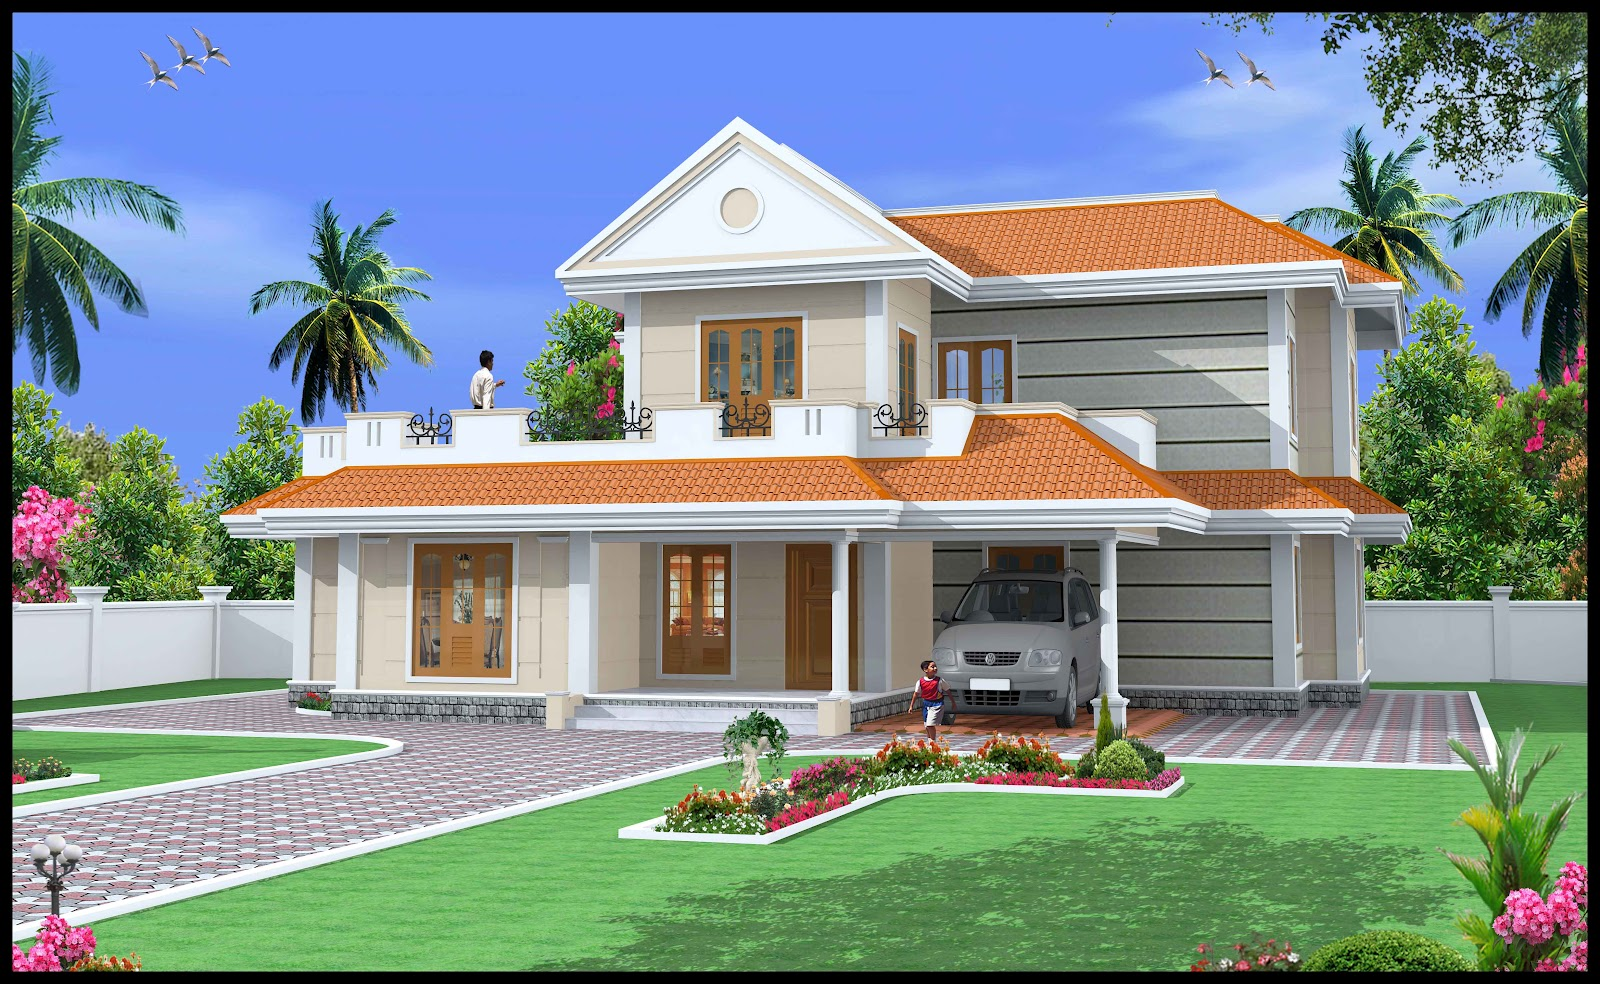 Simple duplex house design indian duplex house designs for Duplex house models